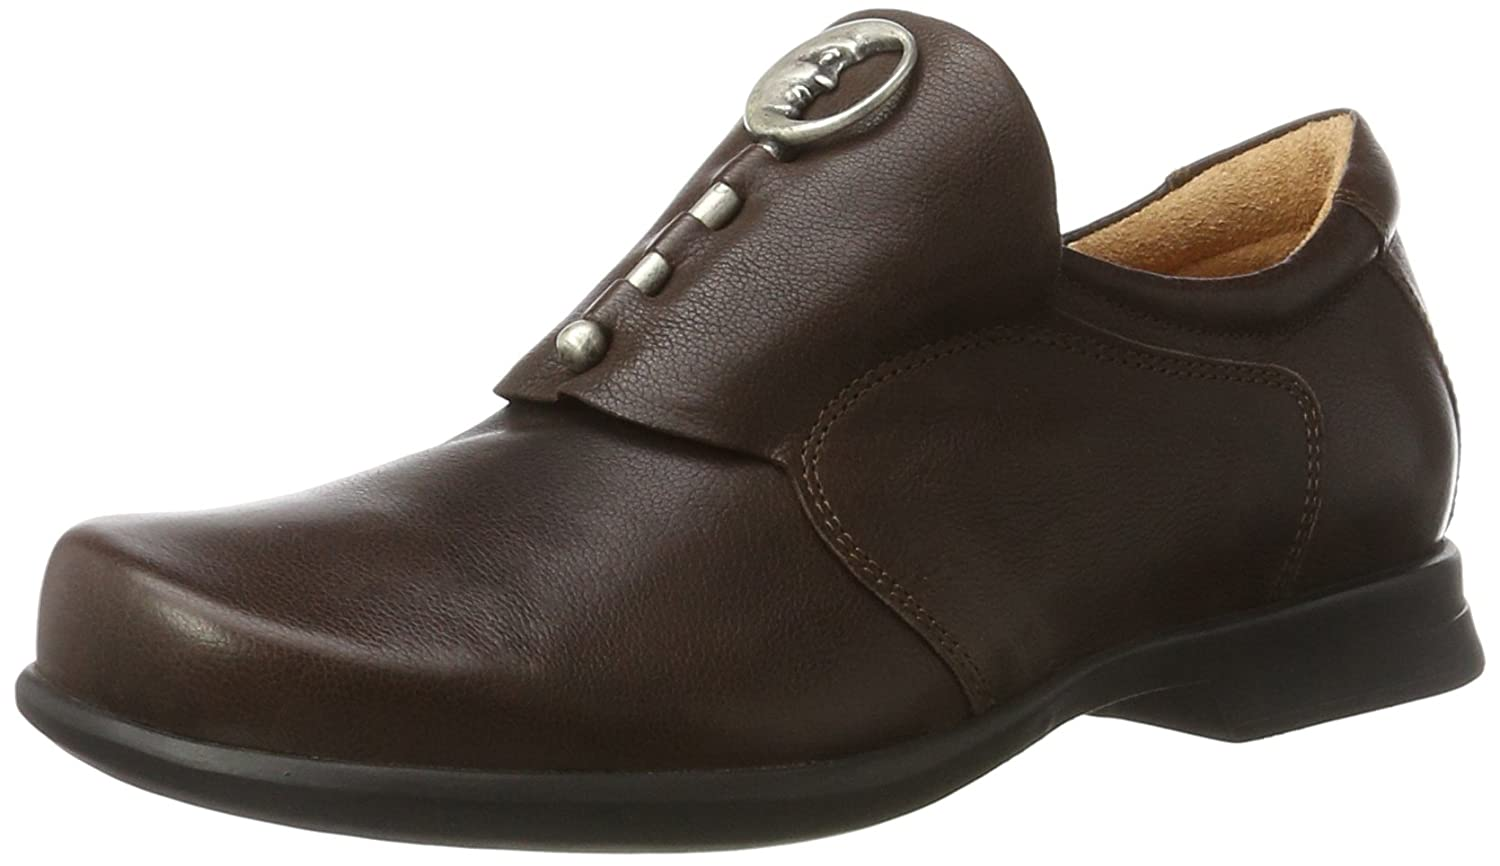 Think Marron! 19918 Pensa, Mocassins Espresso Femme Marron (Espresso 41 Espresso 41) 2d2e6ca - digitalweb.space